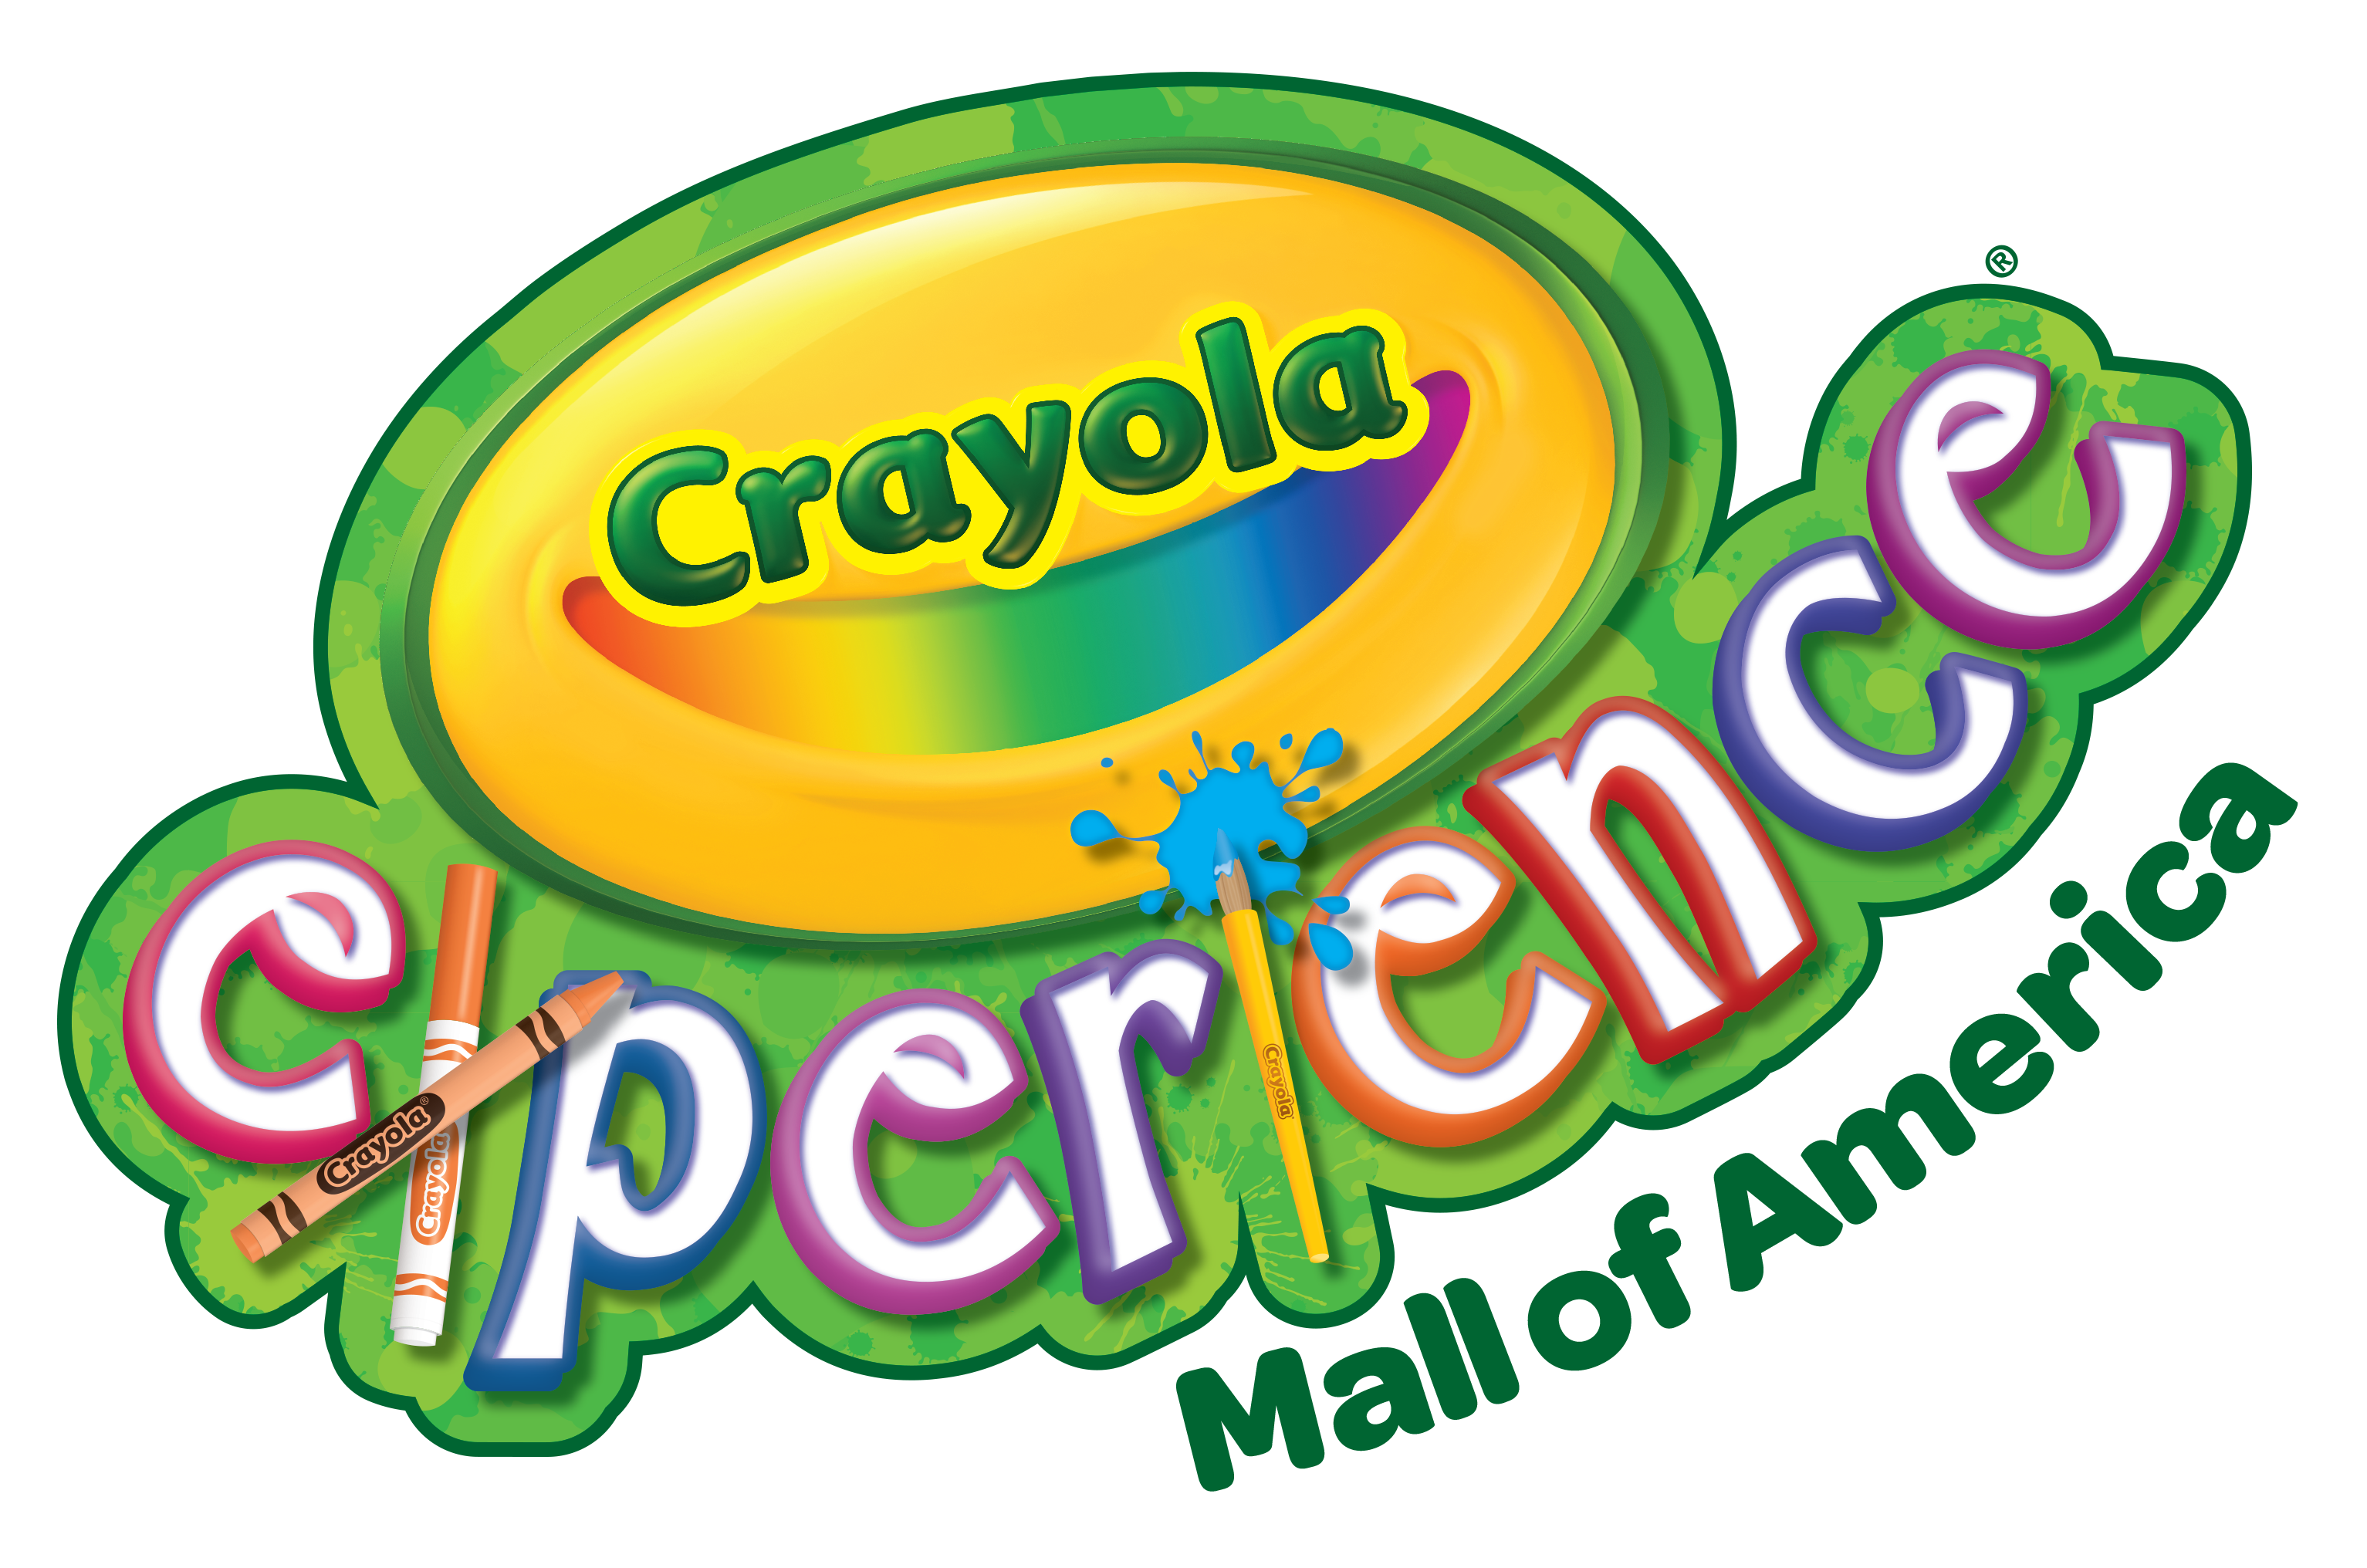 Mall of america logo png. Crayola experience tickets for